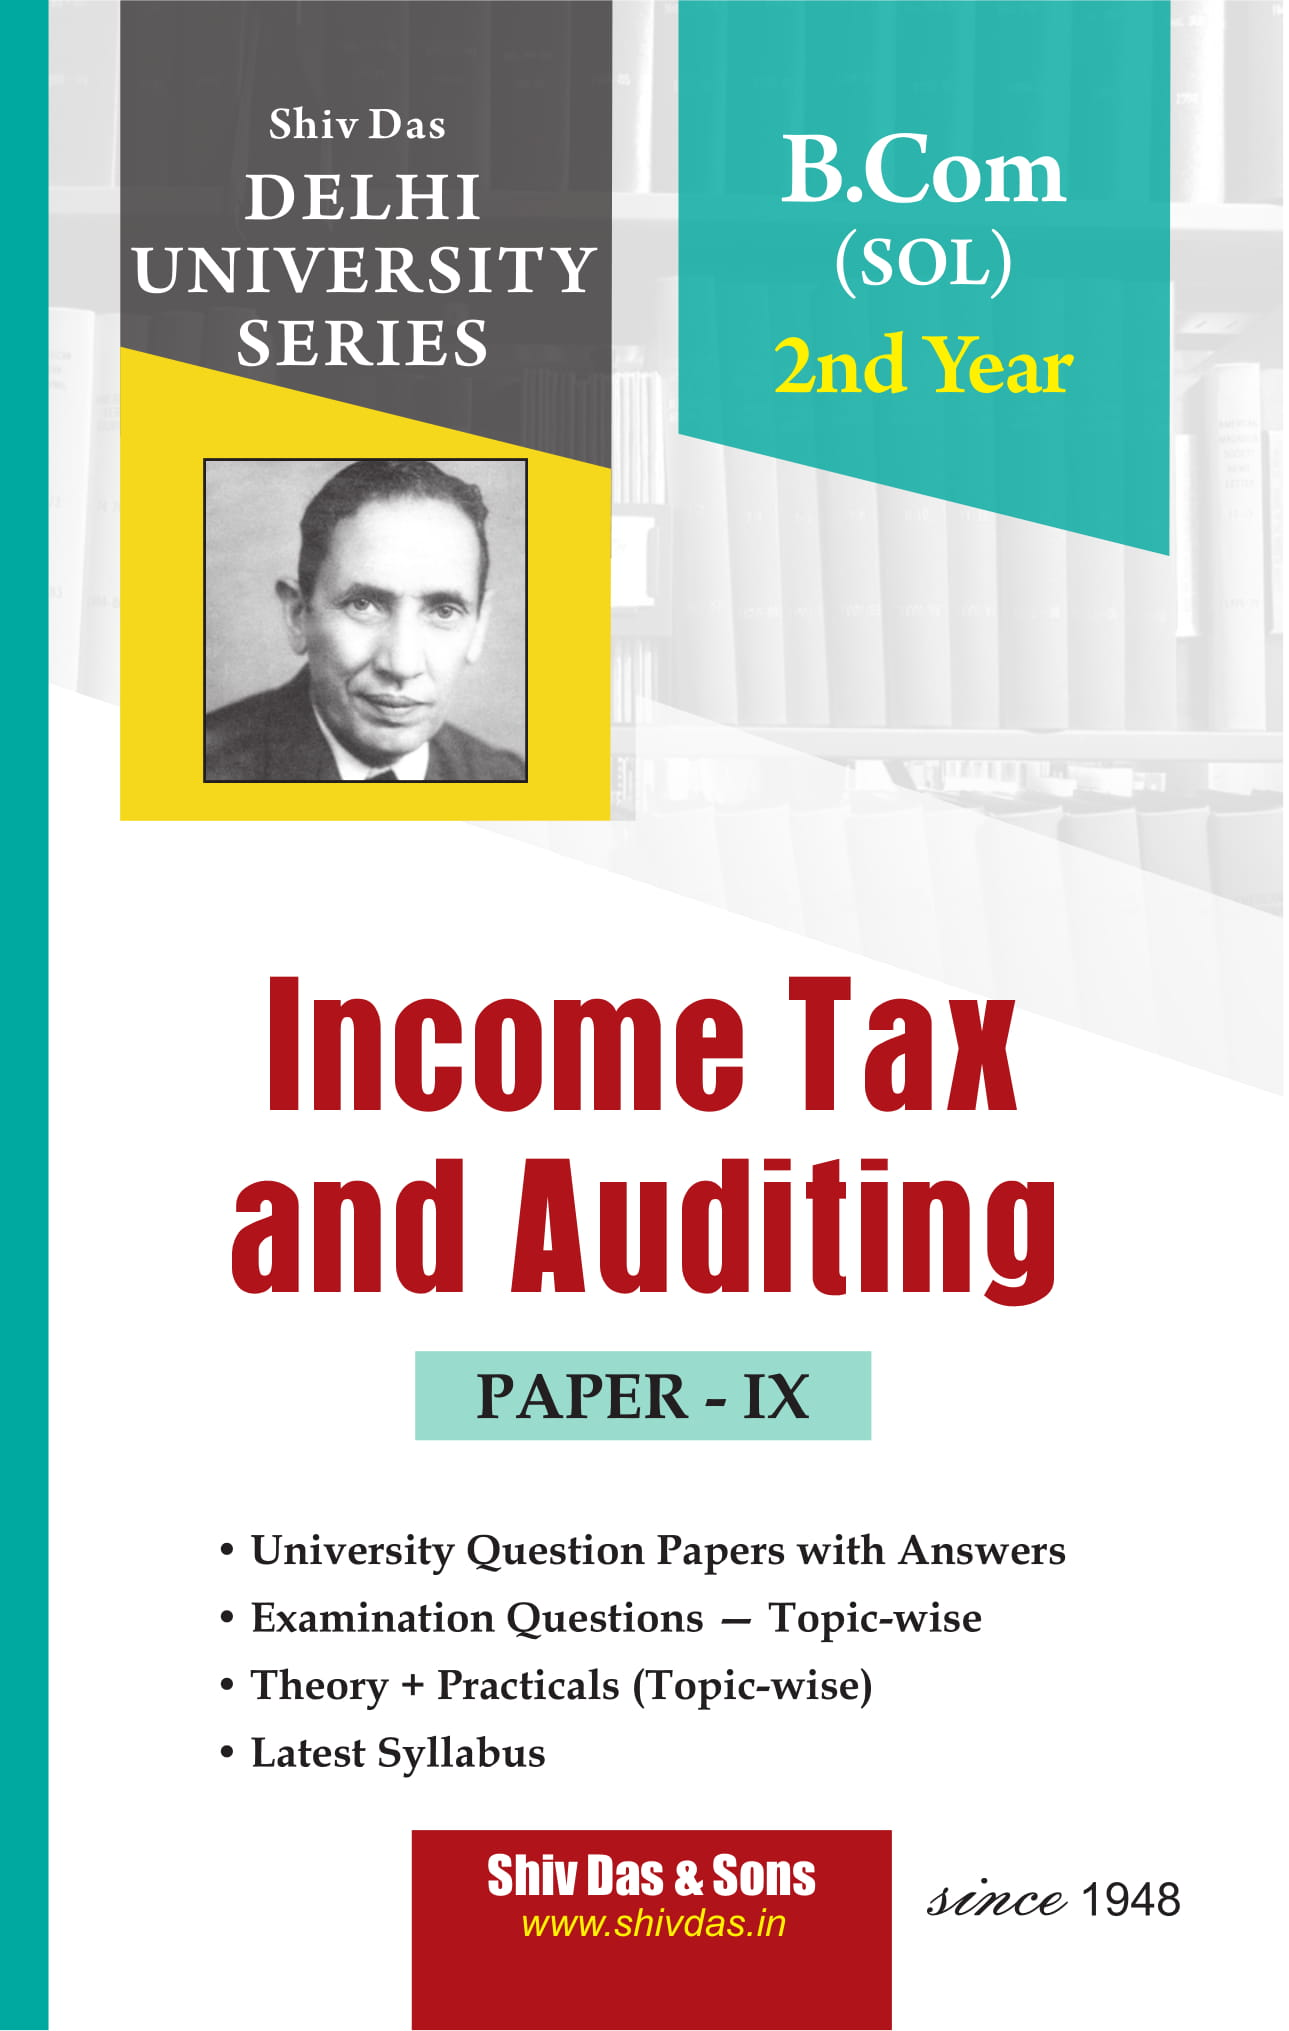 Income Tax and Auditing (Eng. Medium) for B.Com 2nd Year SOL/External